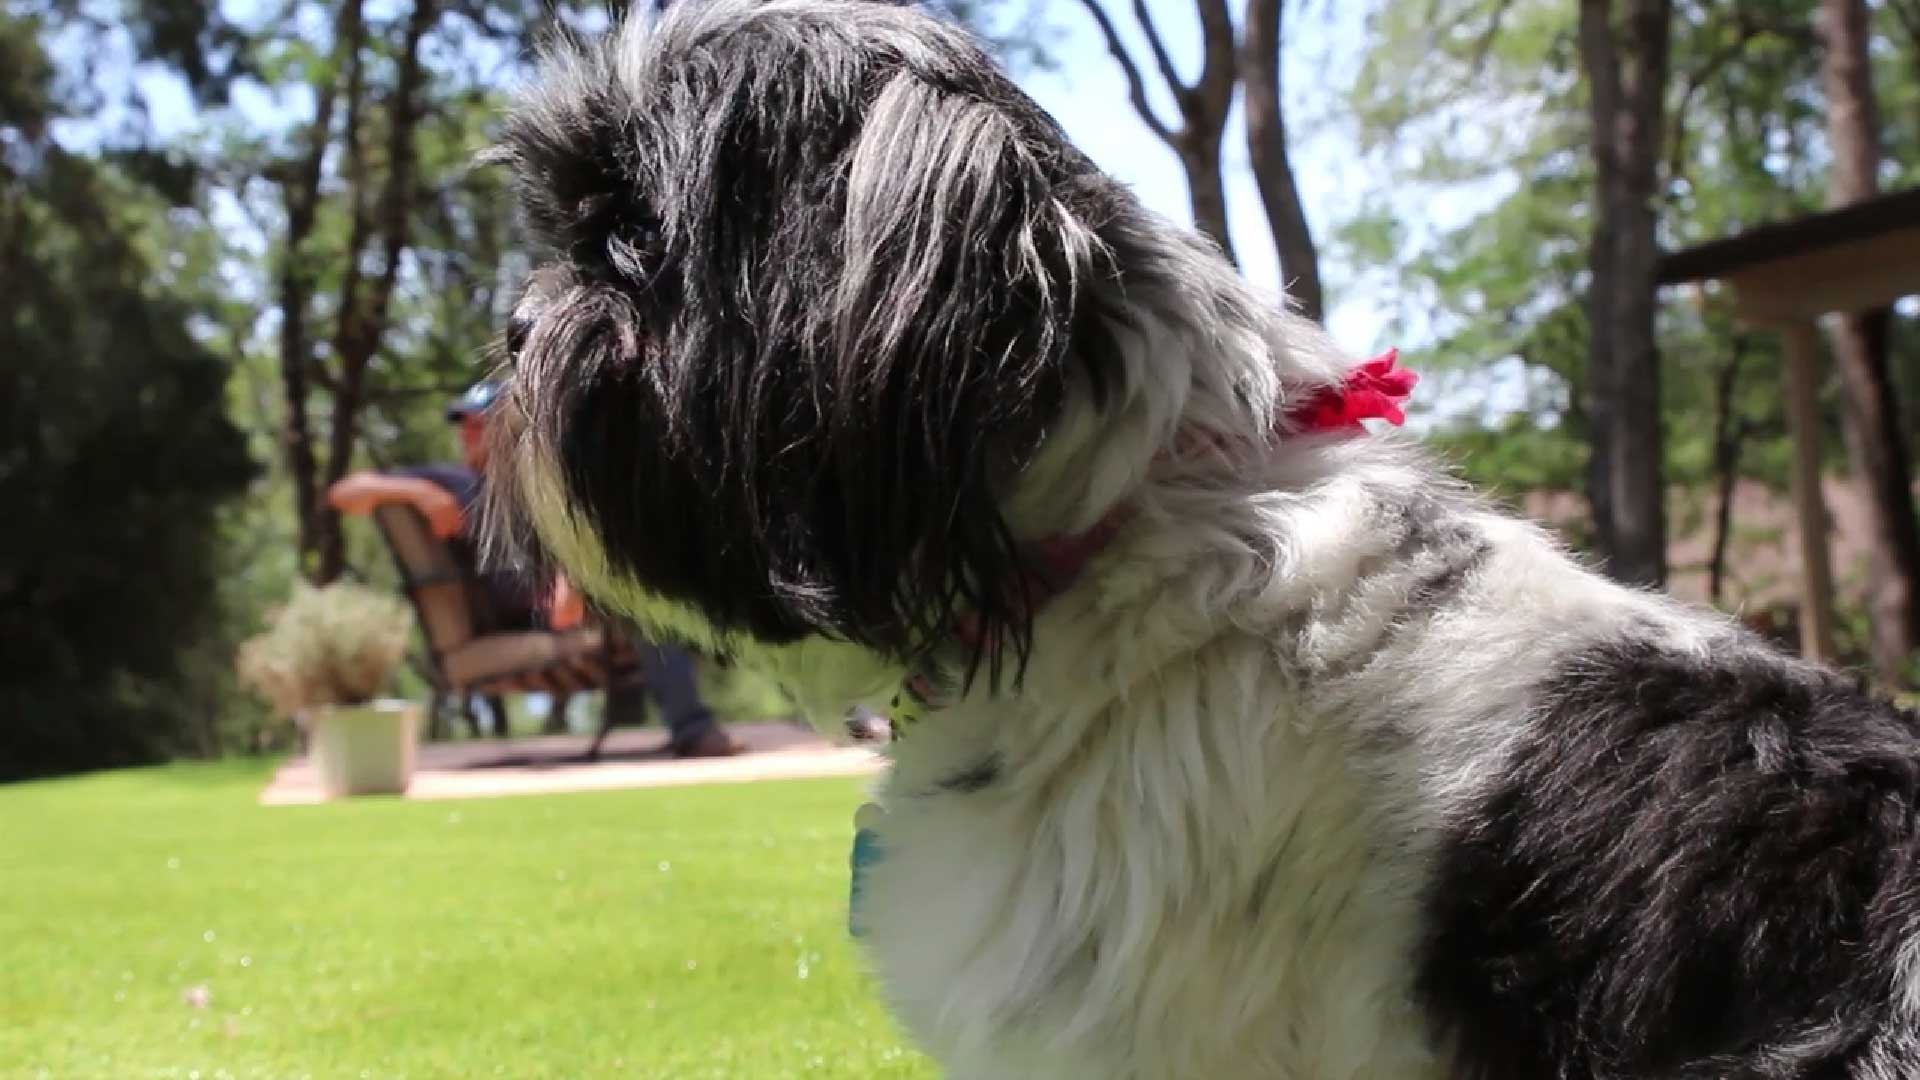 White and black small dog on artificial grass, synthetic turf